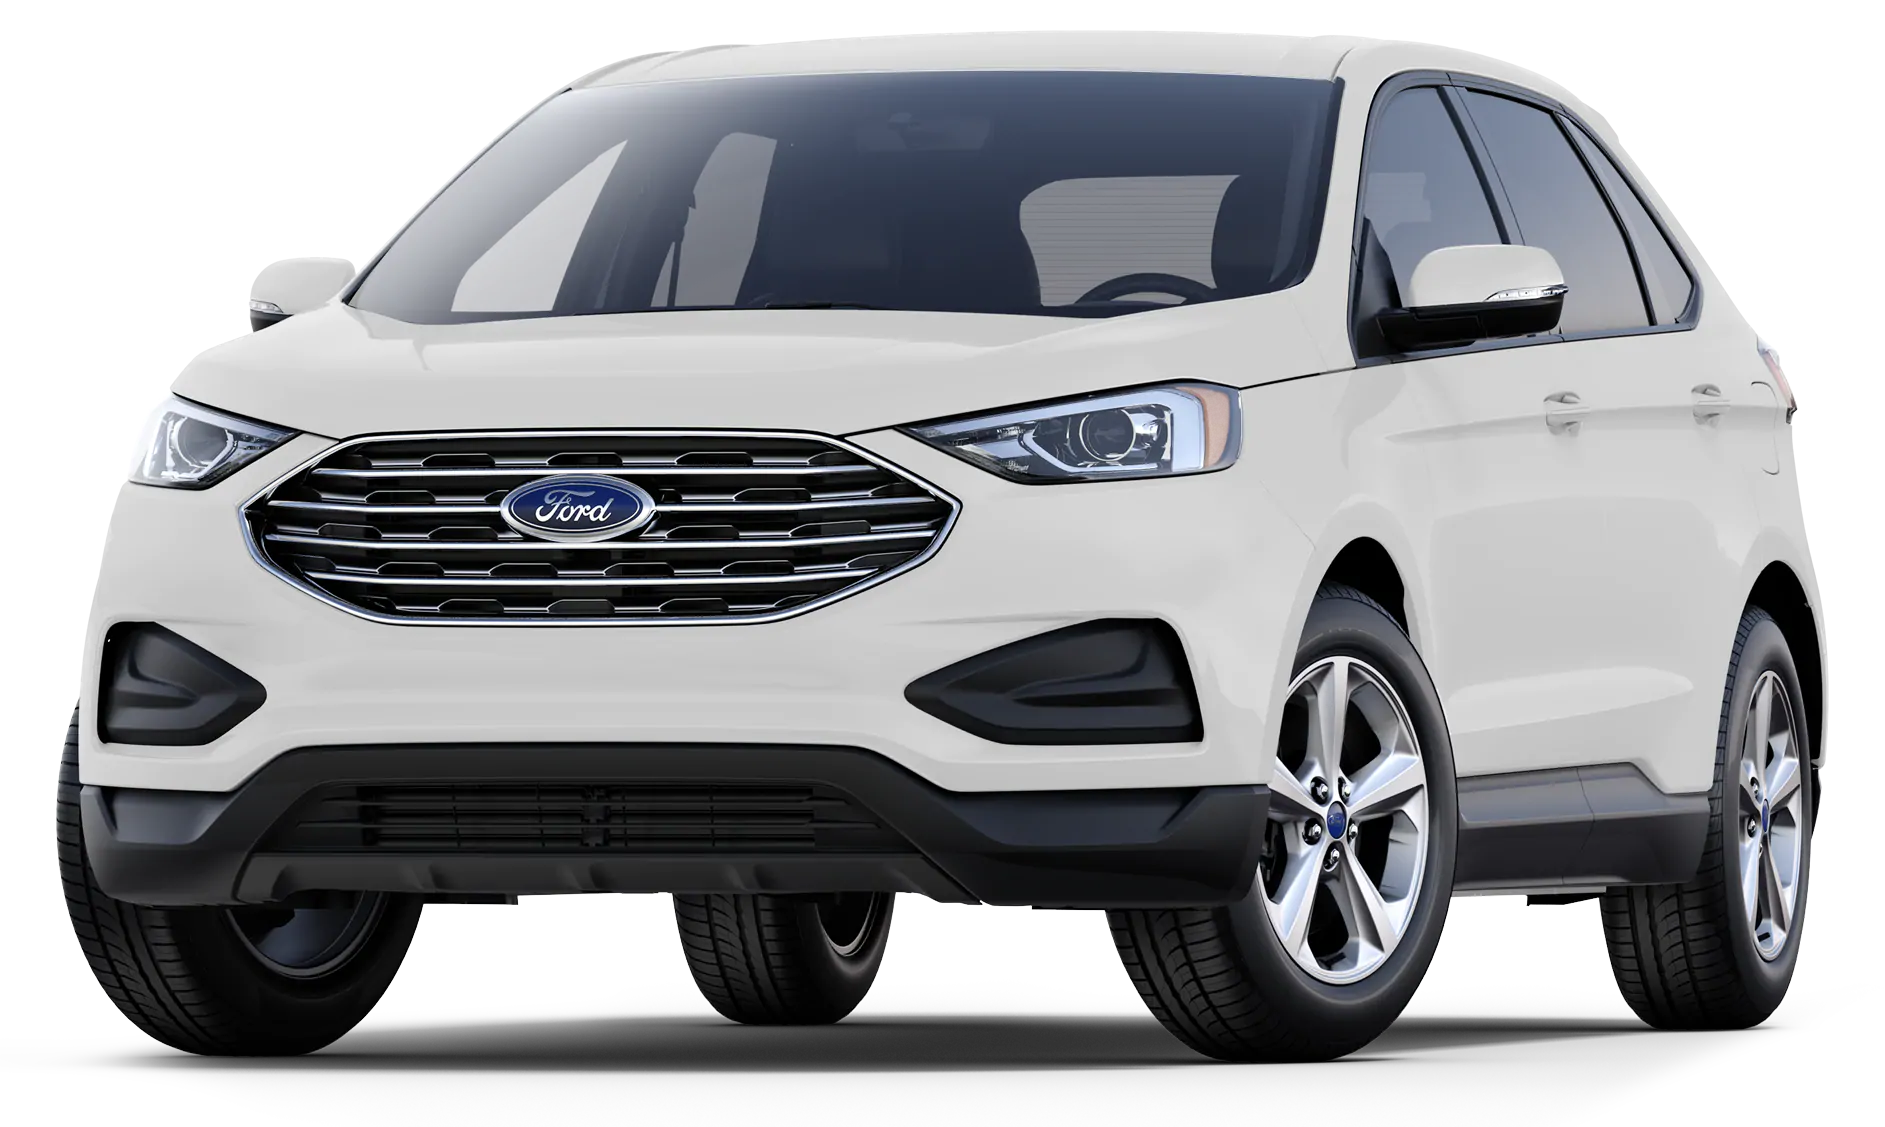 2019 ford edge rear used car reviews cars review release. Black Bedroom Furniture Sets. Home Design Ideas